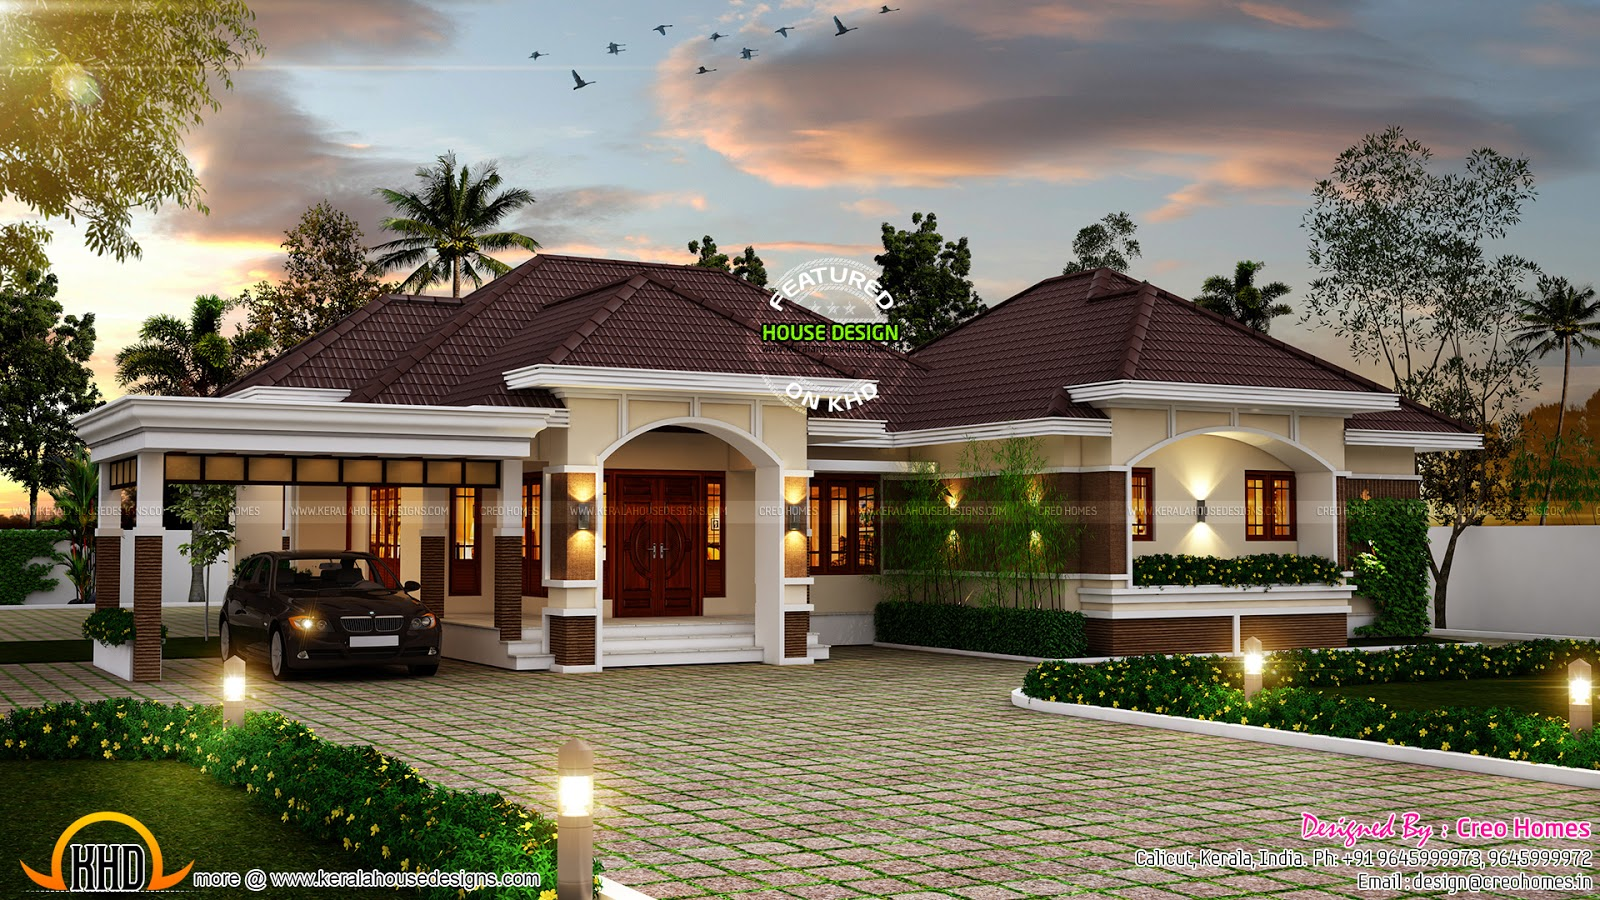 Outstanding bungalow in kerala kerala home design and for Design this house